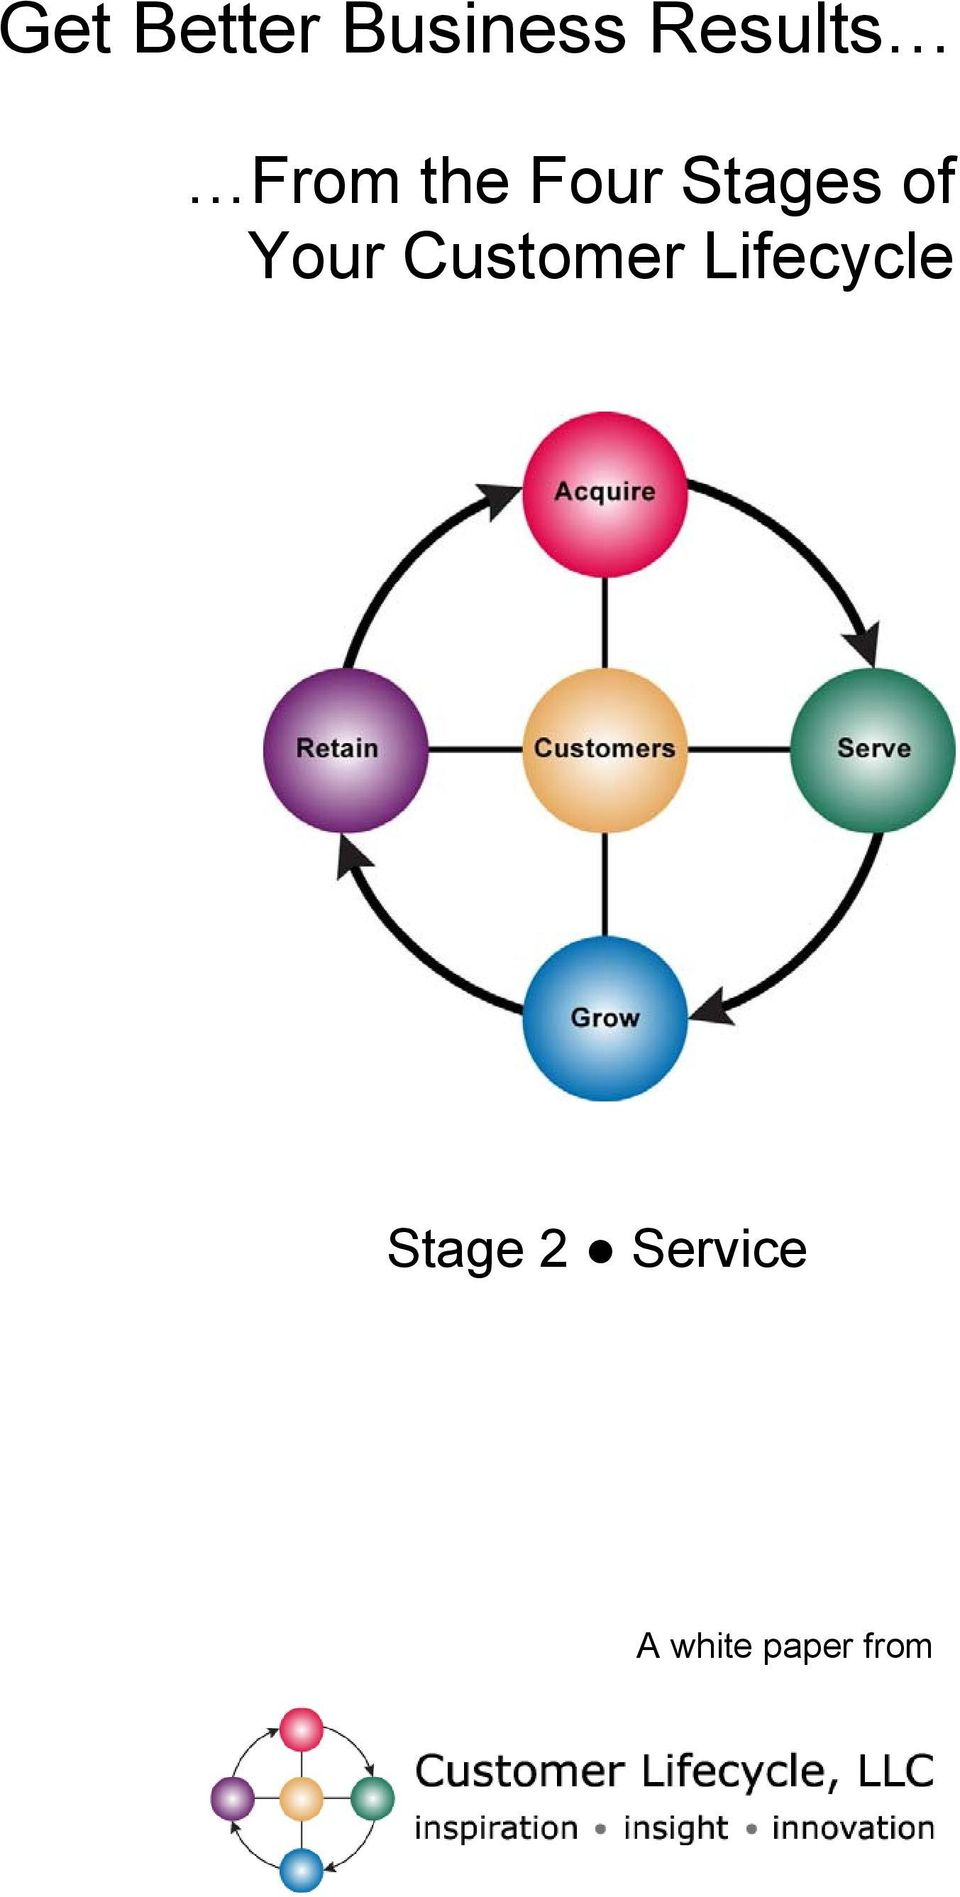 Your Customer Lifecycle